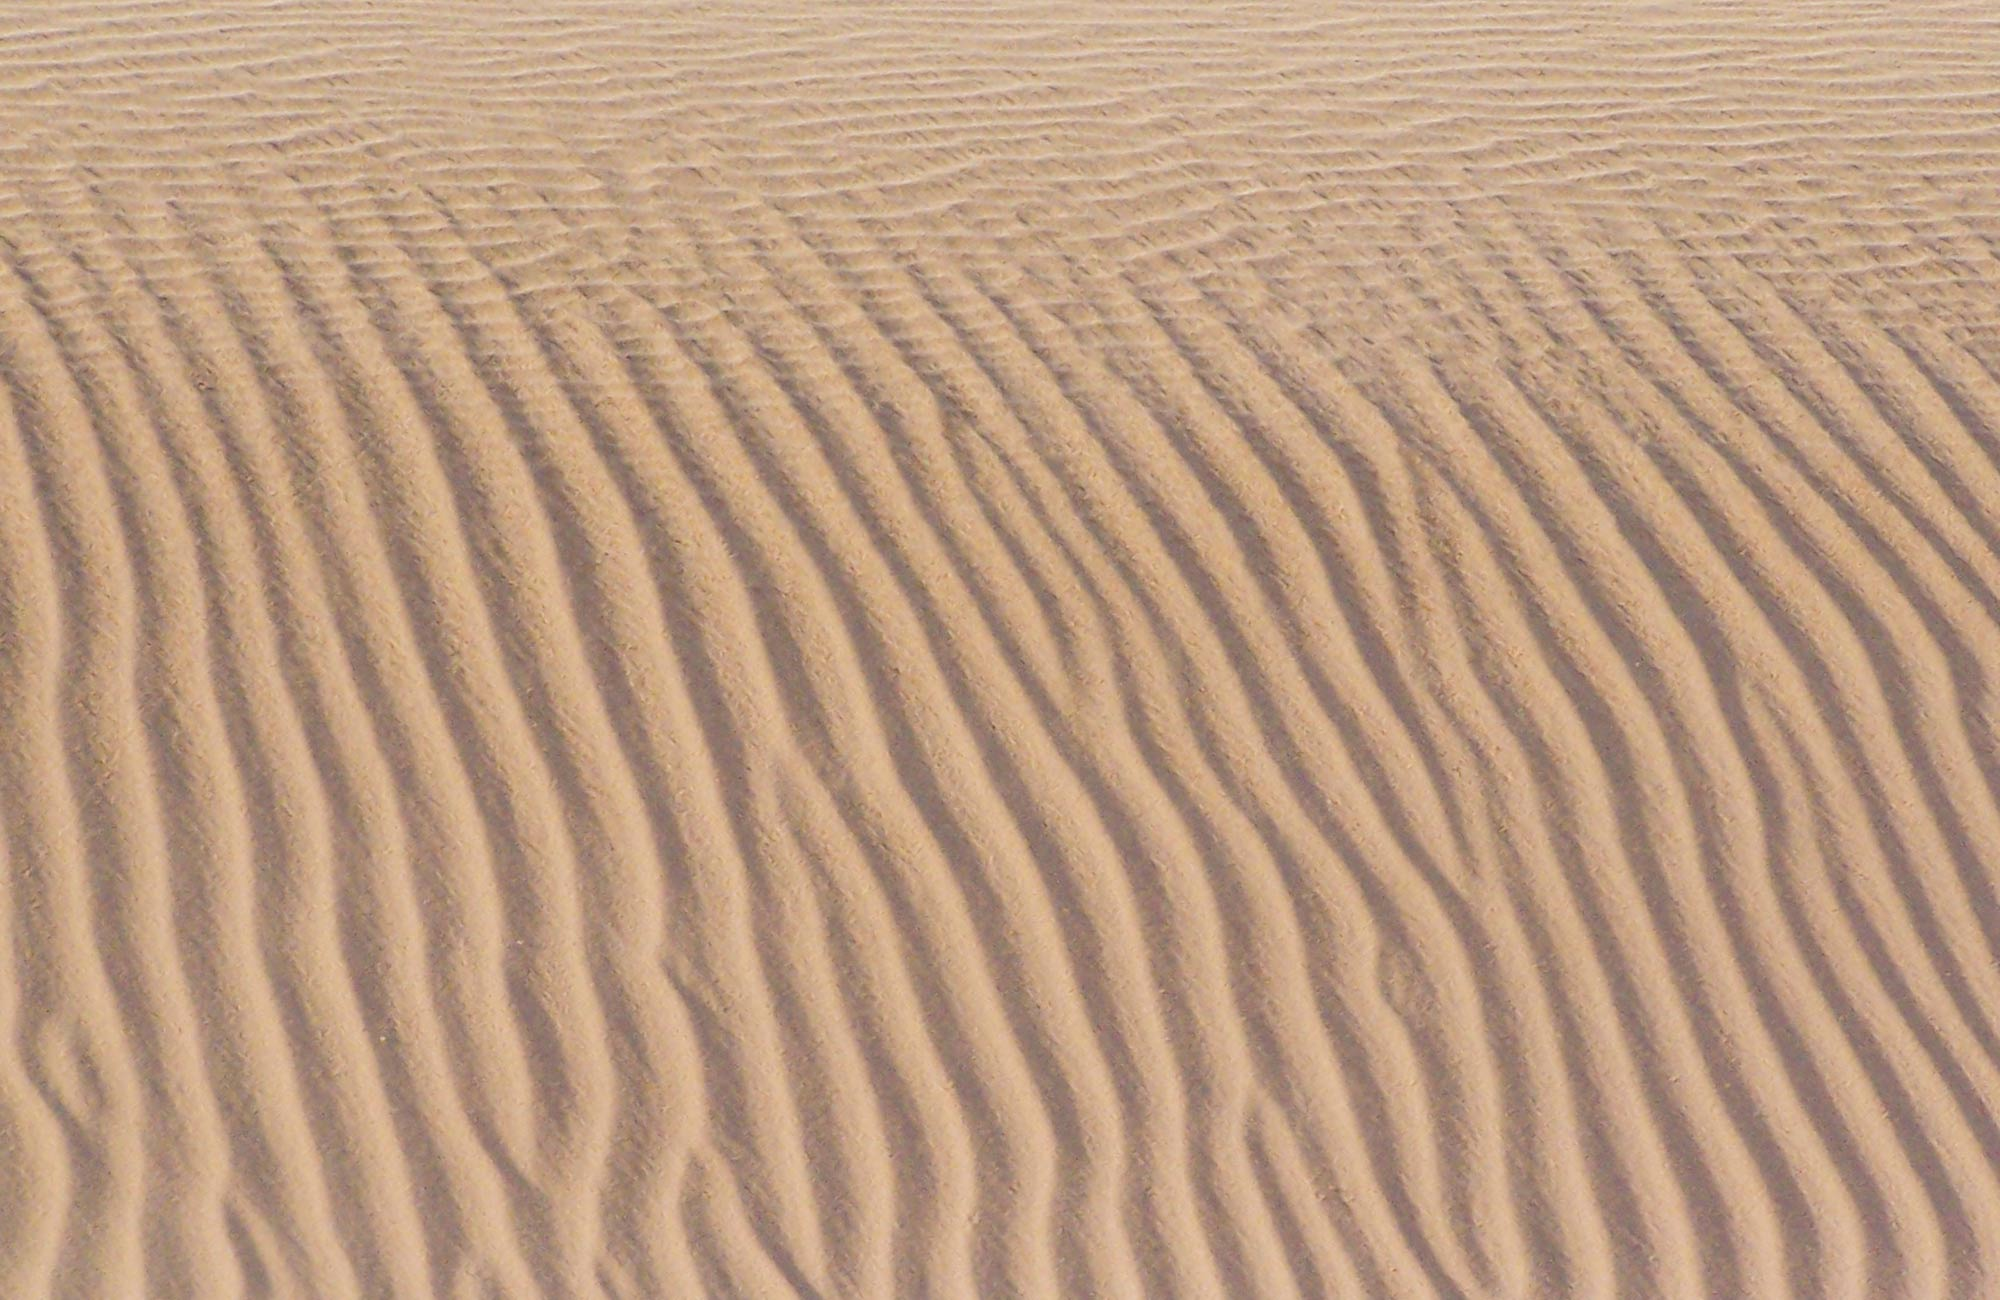 Close up of sand dunes, Mungo National Park. Photo:OEH